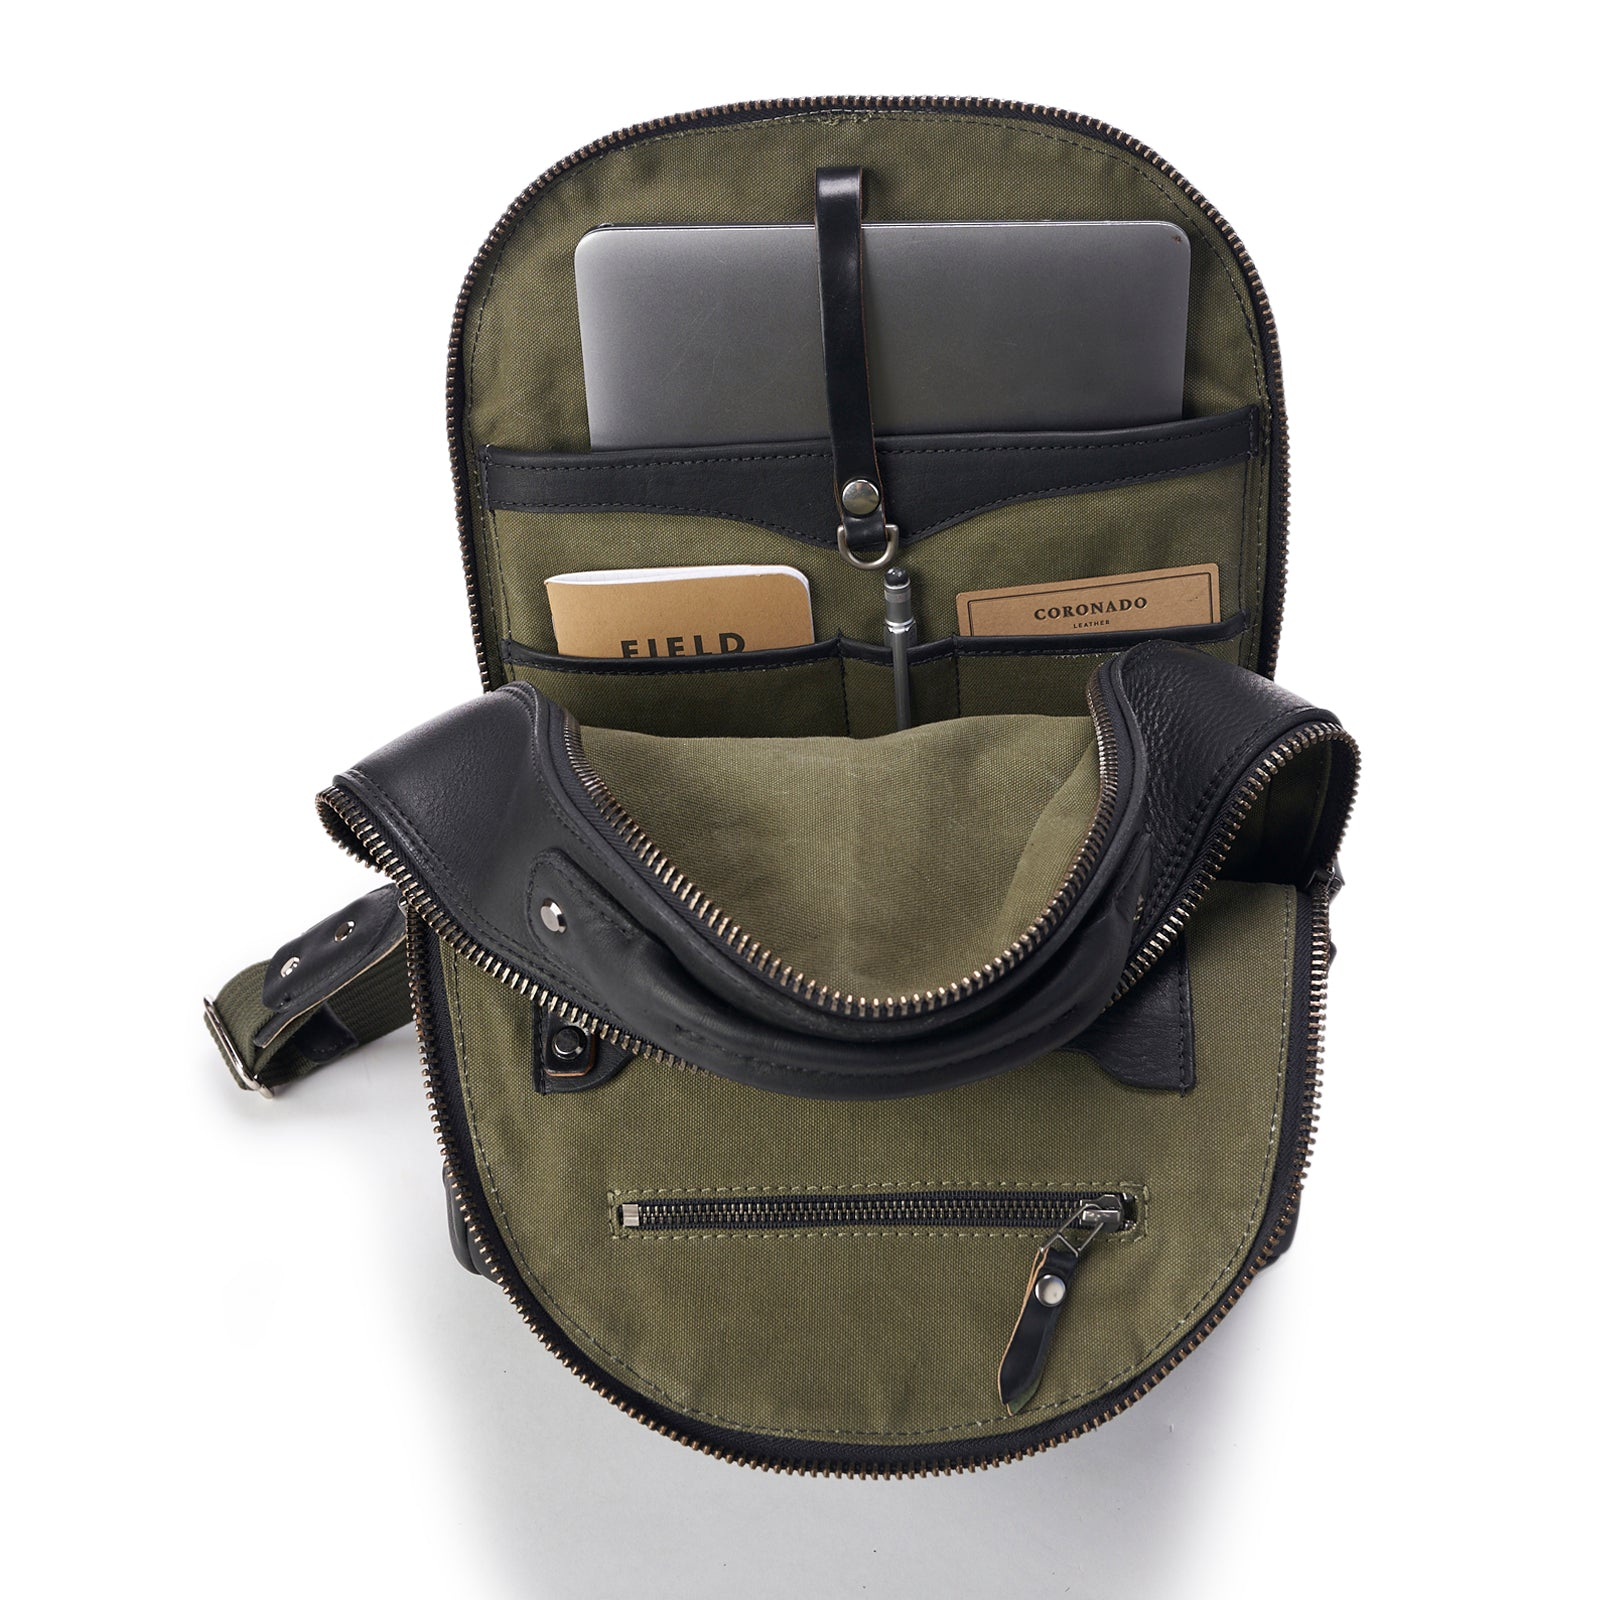 Clark Glove-Backpack No. 951-G